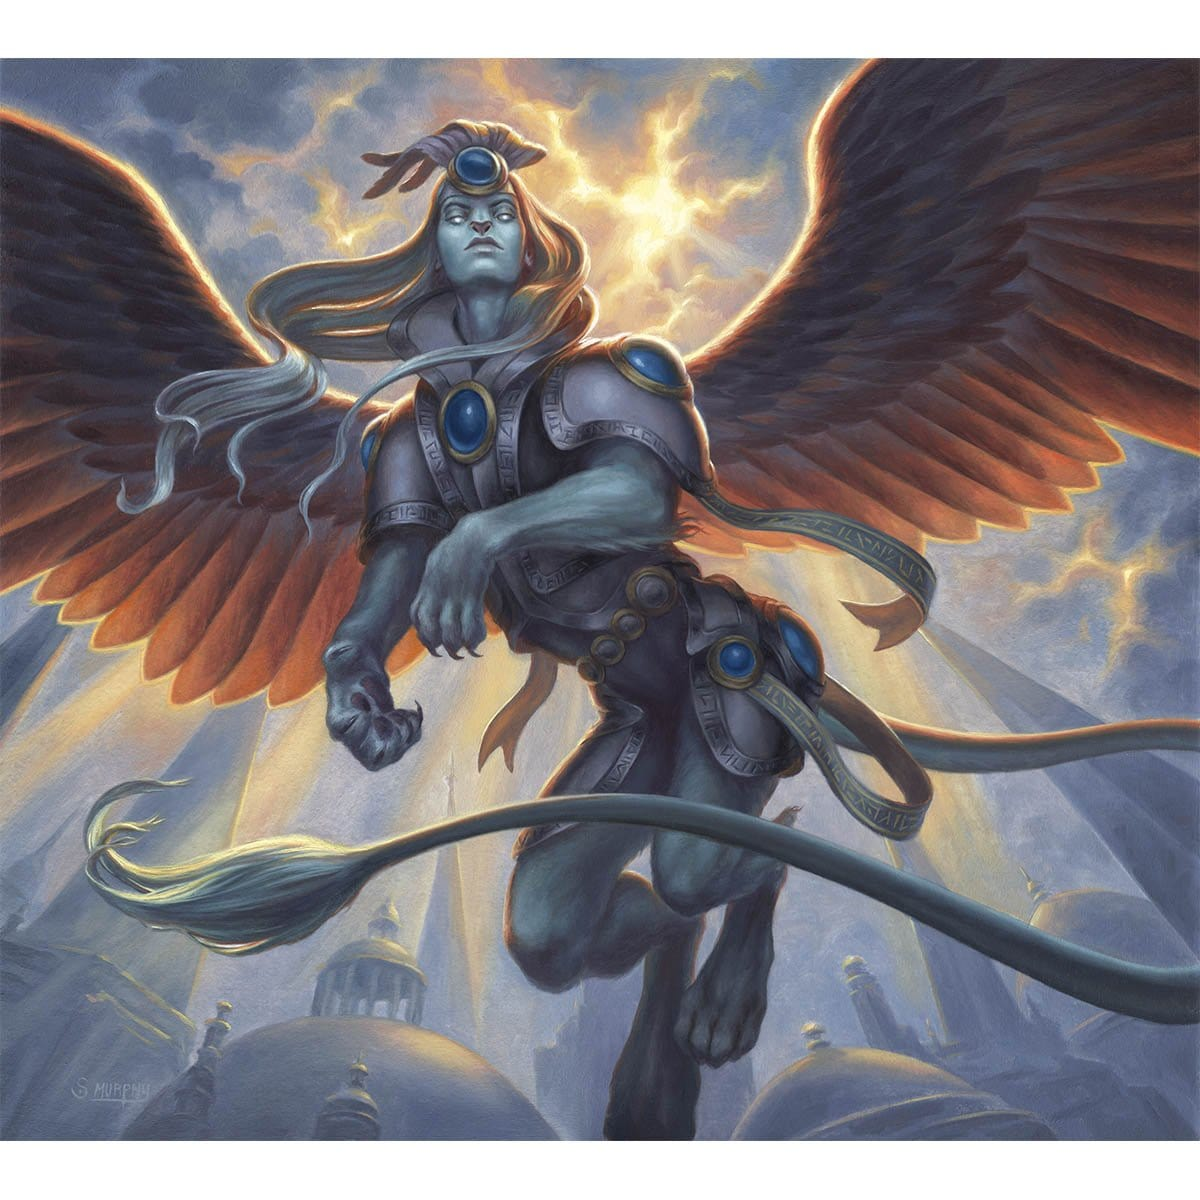 Sphinx Token Print - Print - Original Magic Art - Accessories for Magic the Gathering and other card games